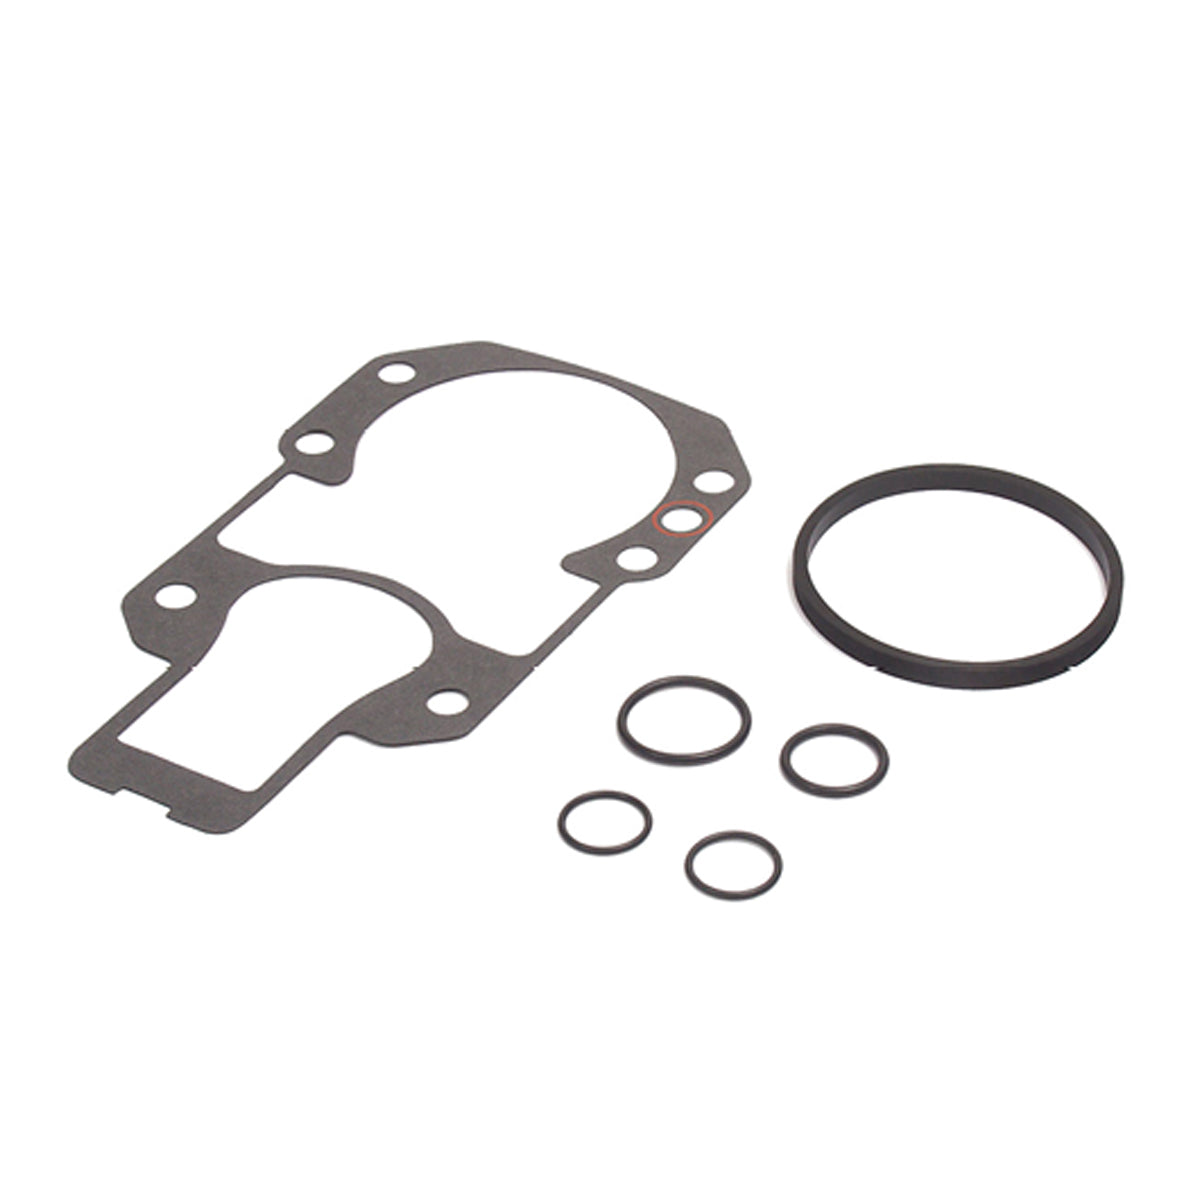 Quicksilver® Drive Installation Kit